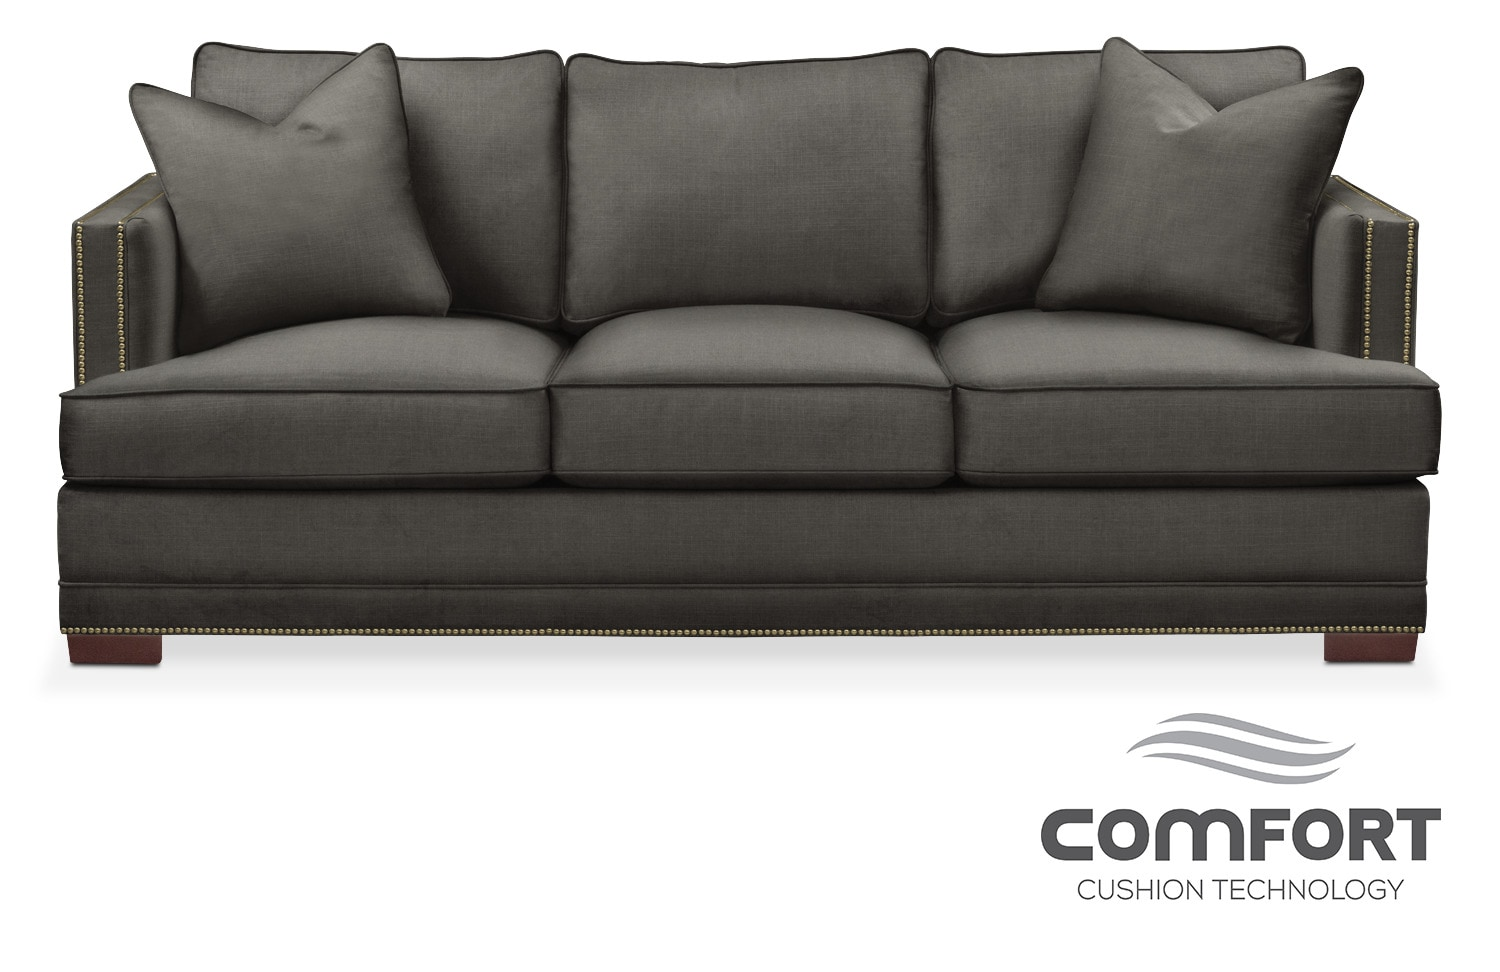 Arden Comfort Sofa   Stately L Sterling Part 82